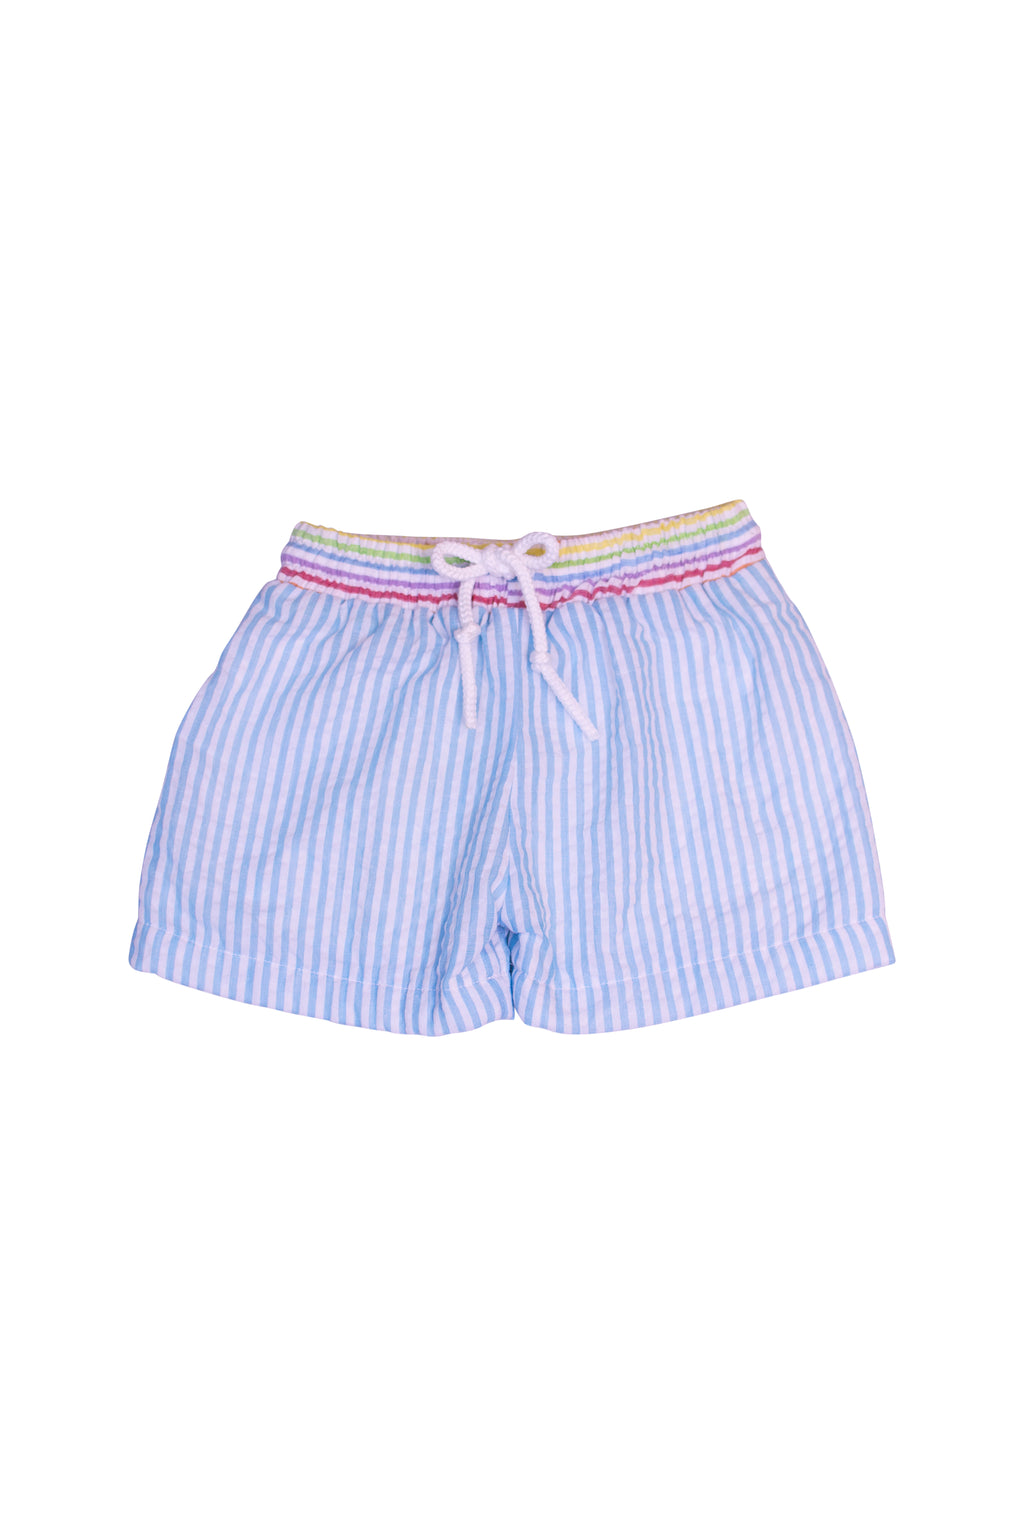 Aqua/Multicolor Seersucker Swim Trunks